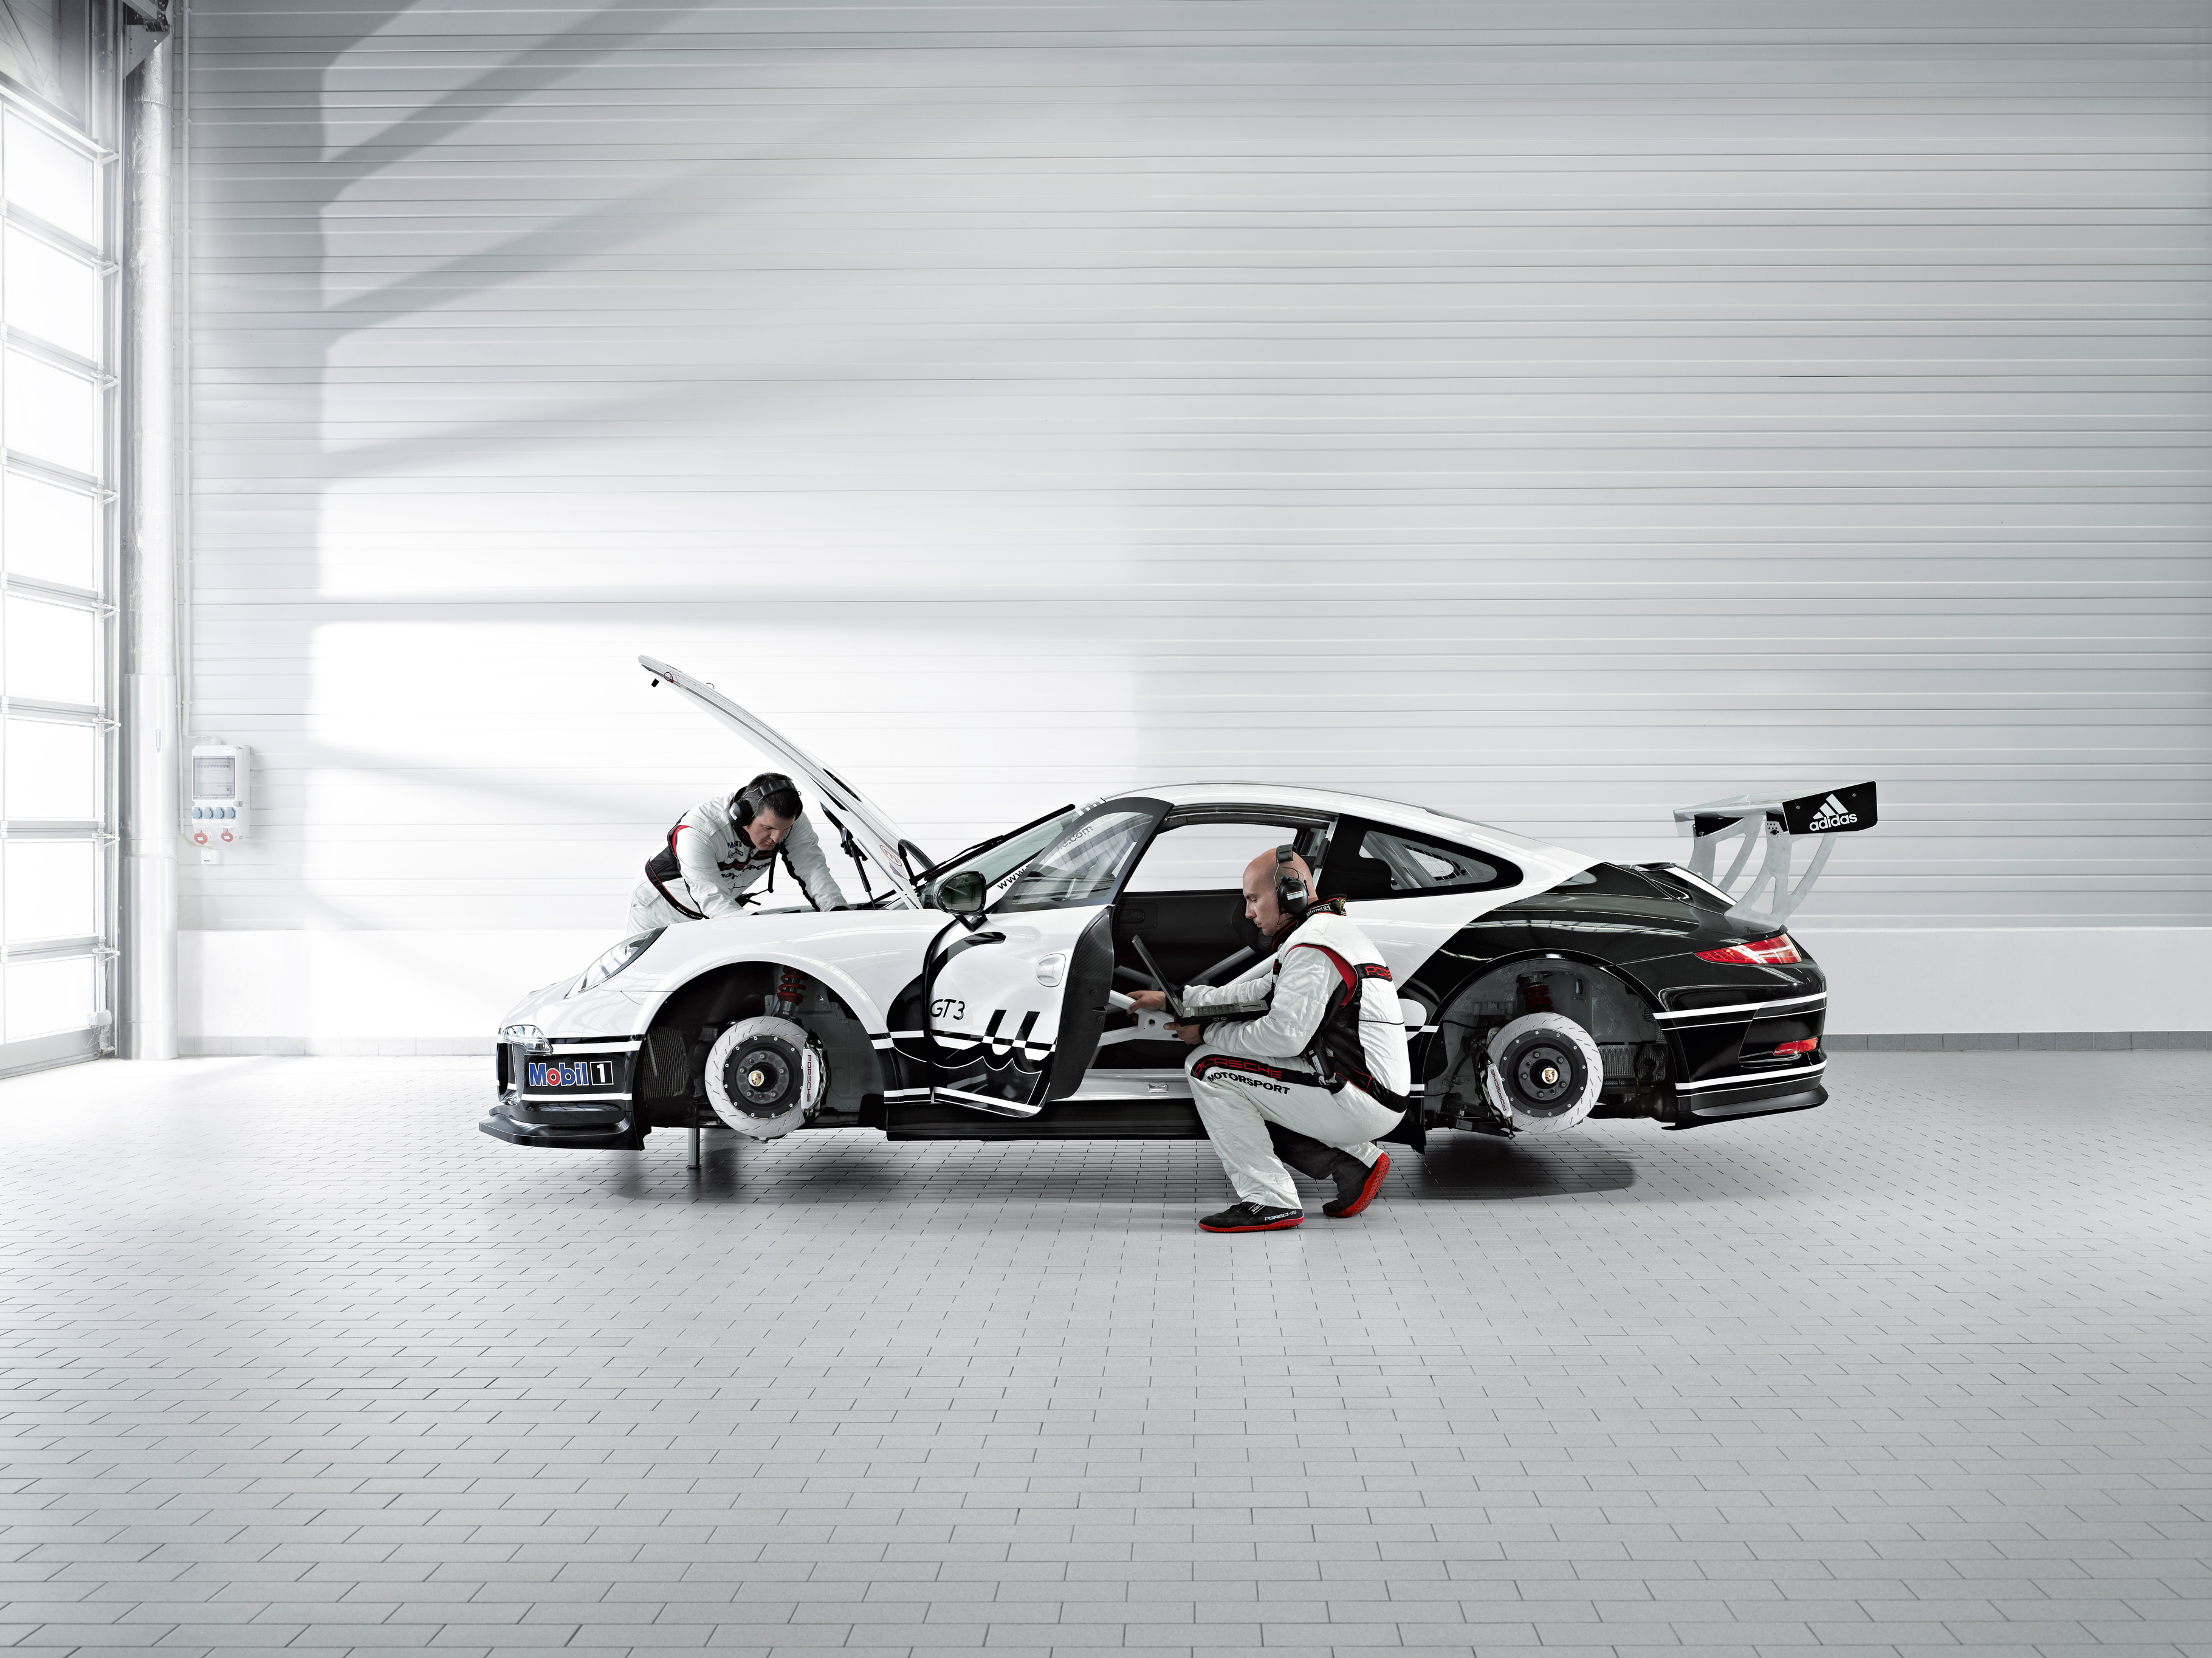 Pfc bremse announced as official partner of porsche motorsport 911 gt3 cup typ 991 publicscrutiny Choice Image